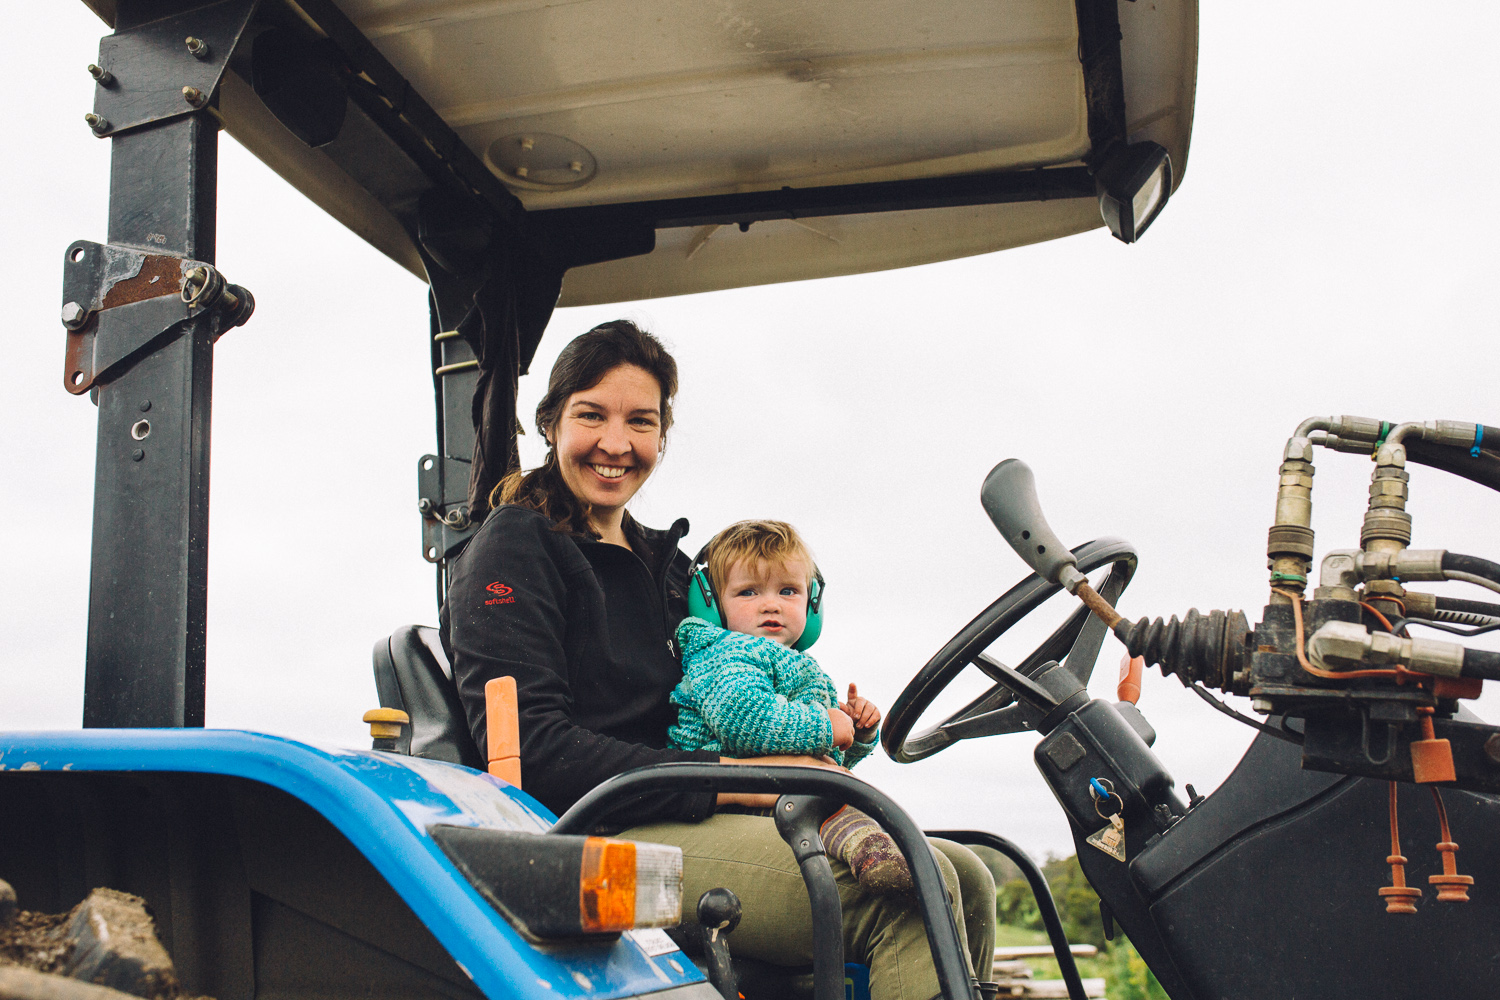 Amelia Bright sitting with her daughter Hazel in a tractor, Amber Creek Farm, Fish Creek, 2016. Source: Museums Victoria, Photographer: Catherine Forge